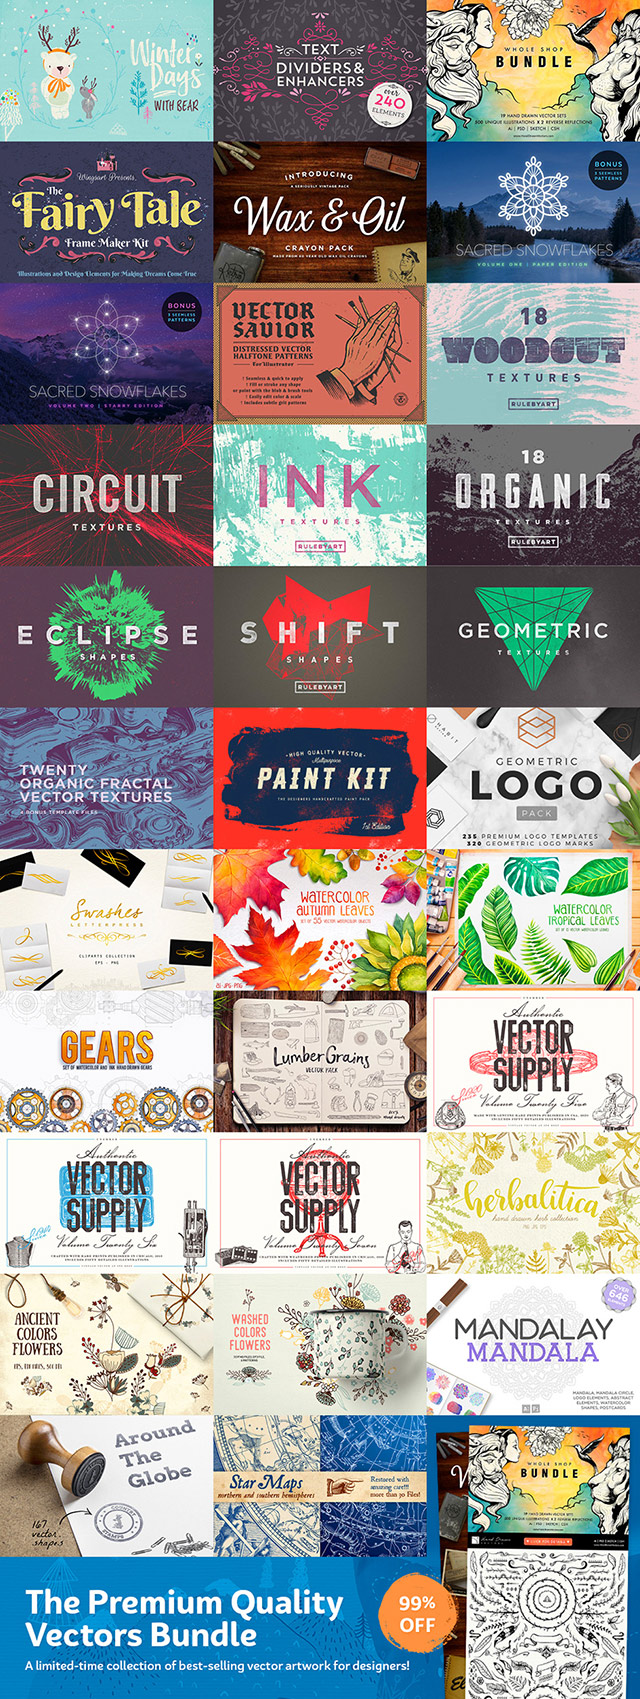 Premium Vector Bundle